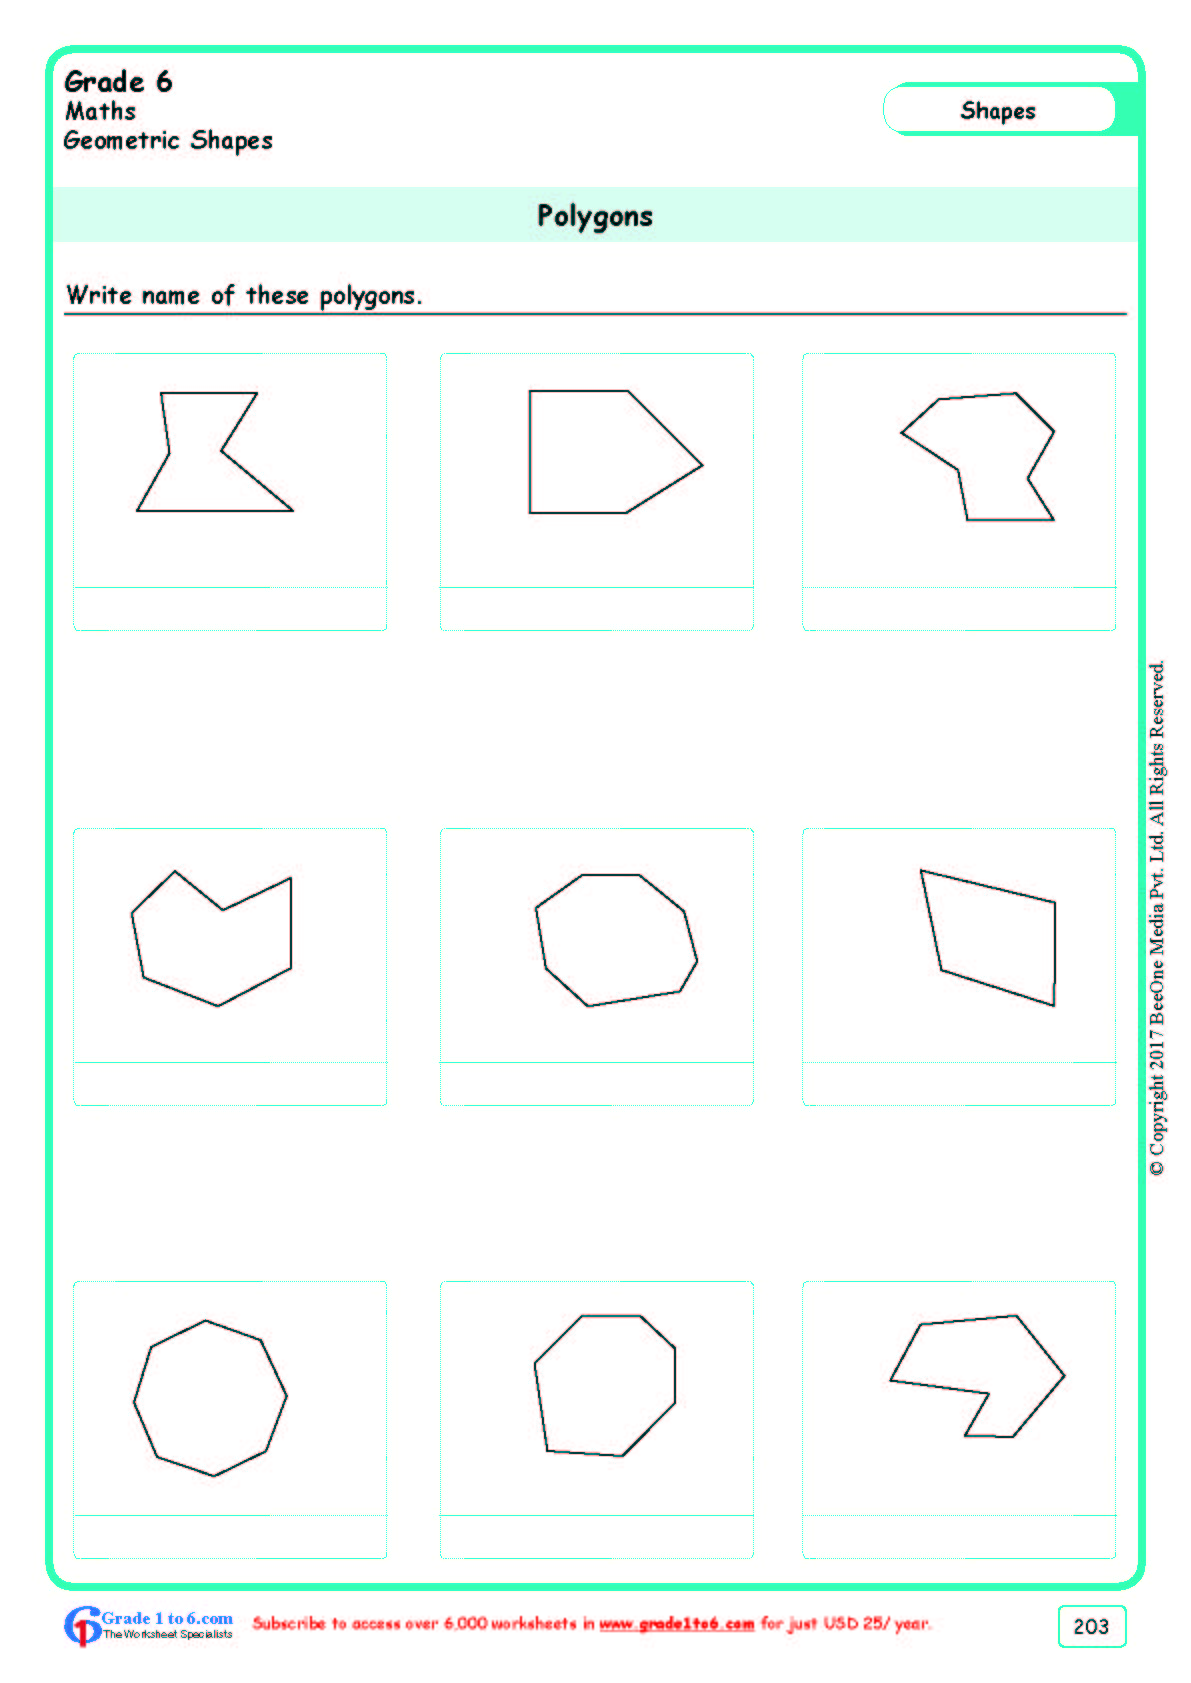 Grade 6 Class Six Polygons Worksheets Ade1to6